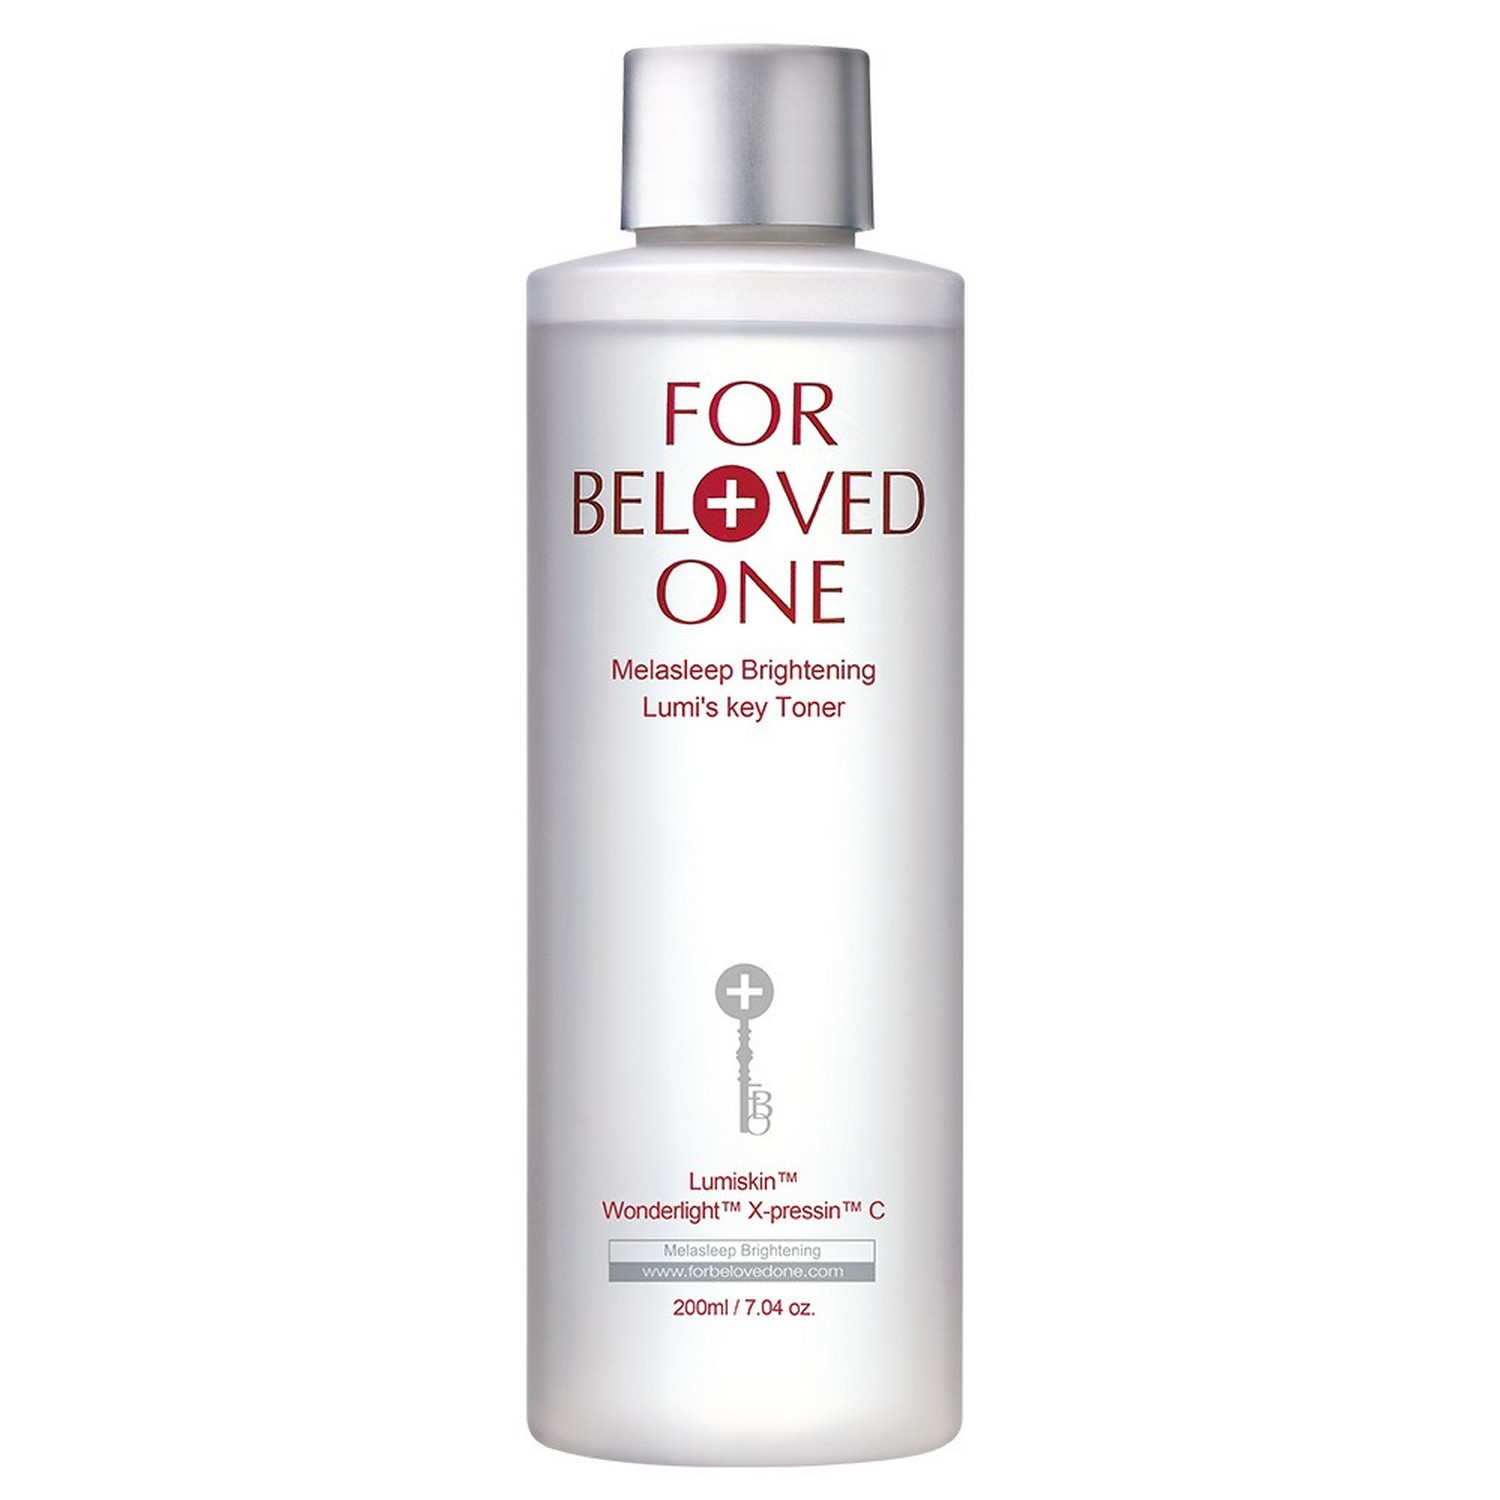 For Beloved One Melasleep Brightening Lumi's Key Toner (200 ml / 7.04 oz)